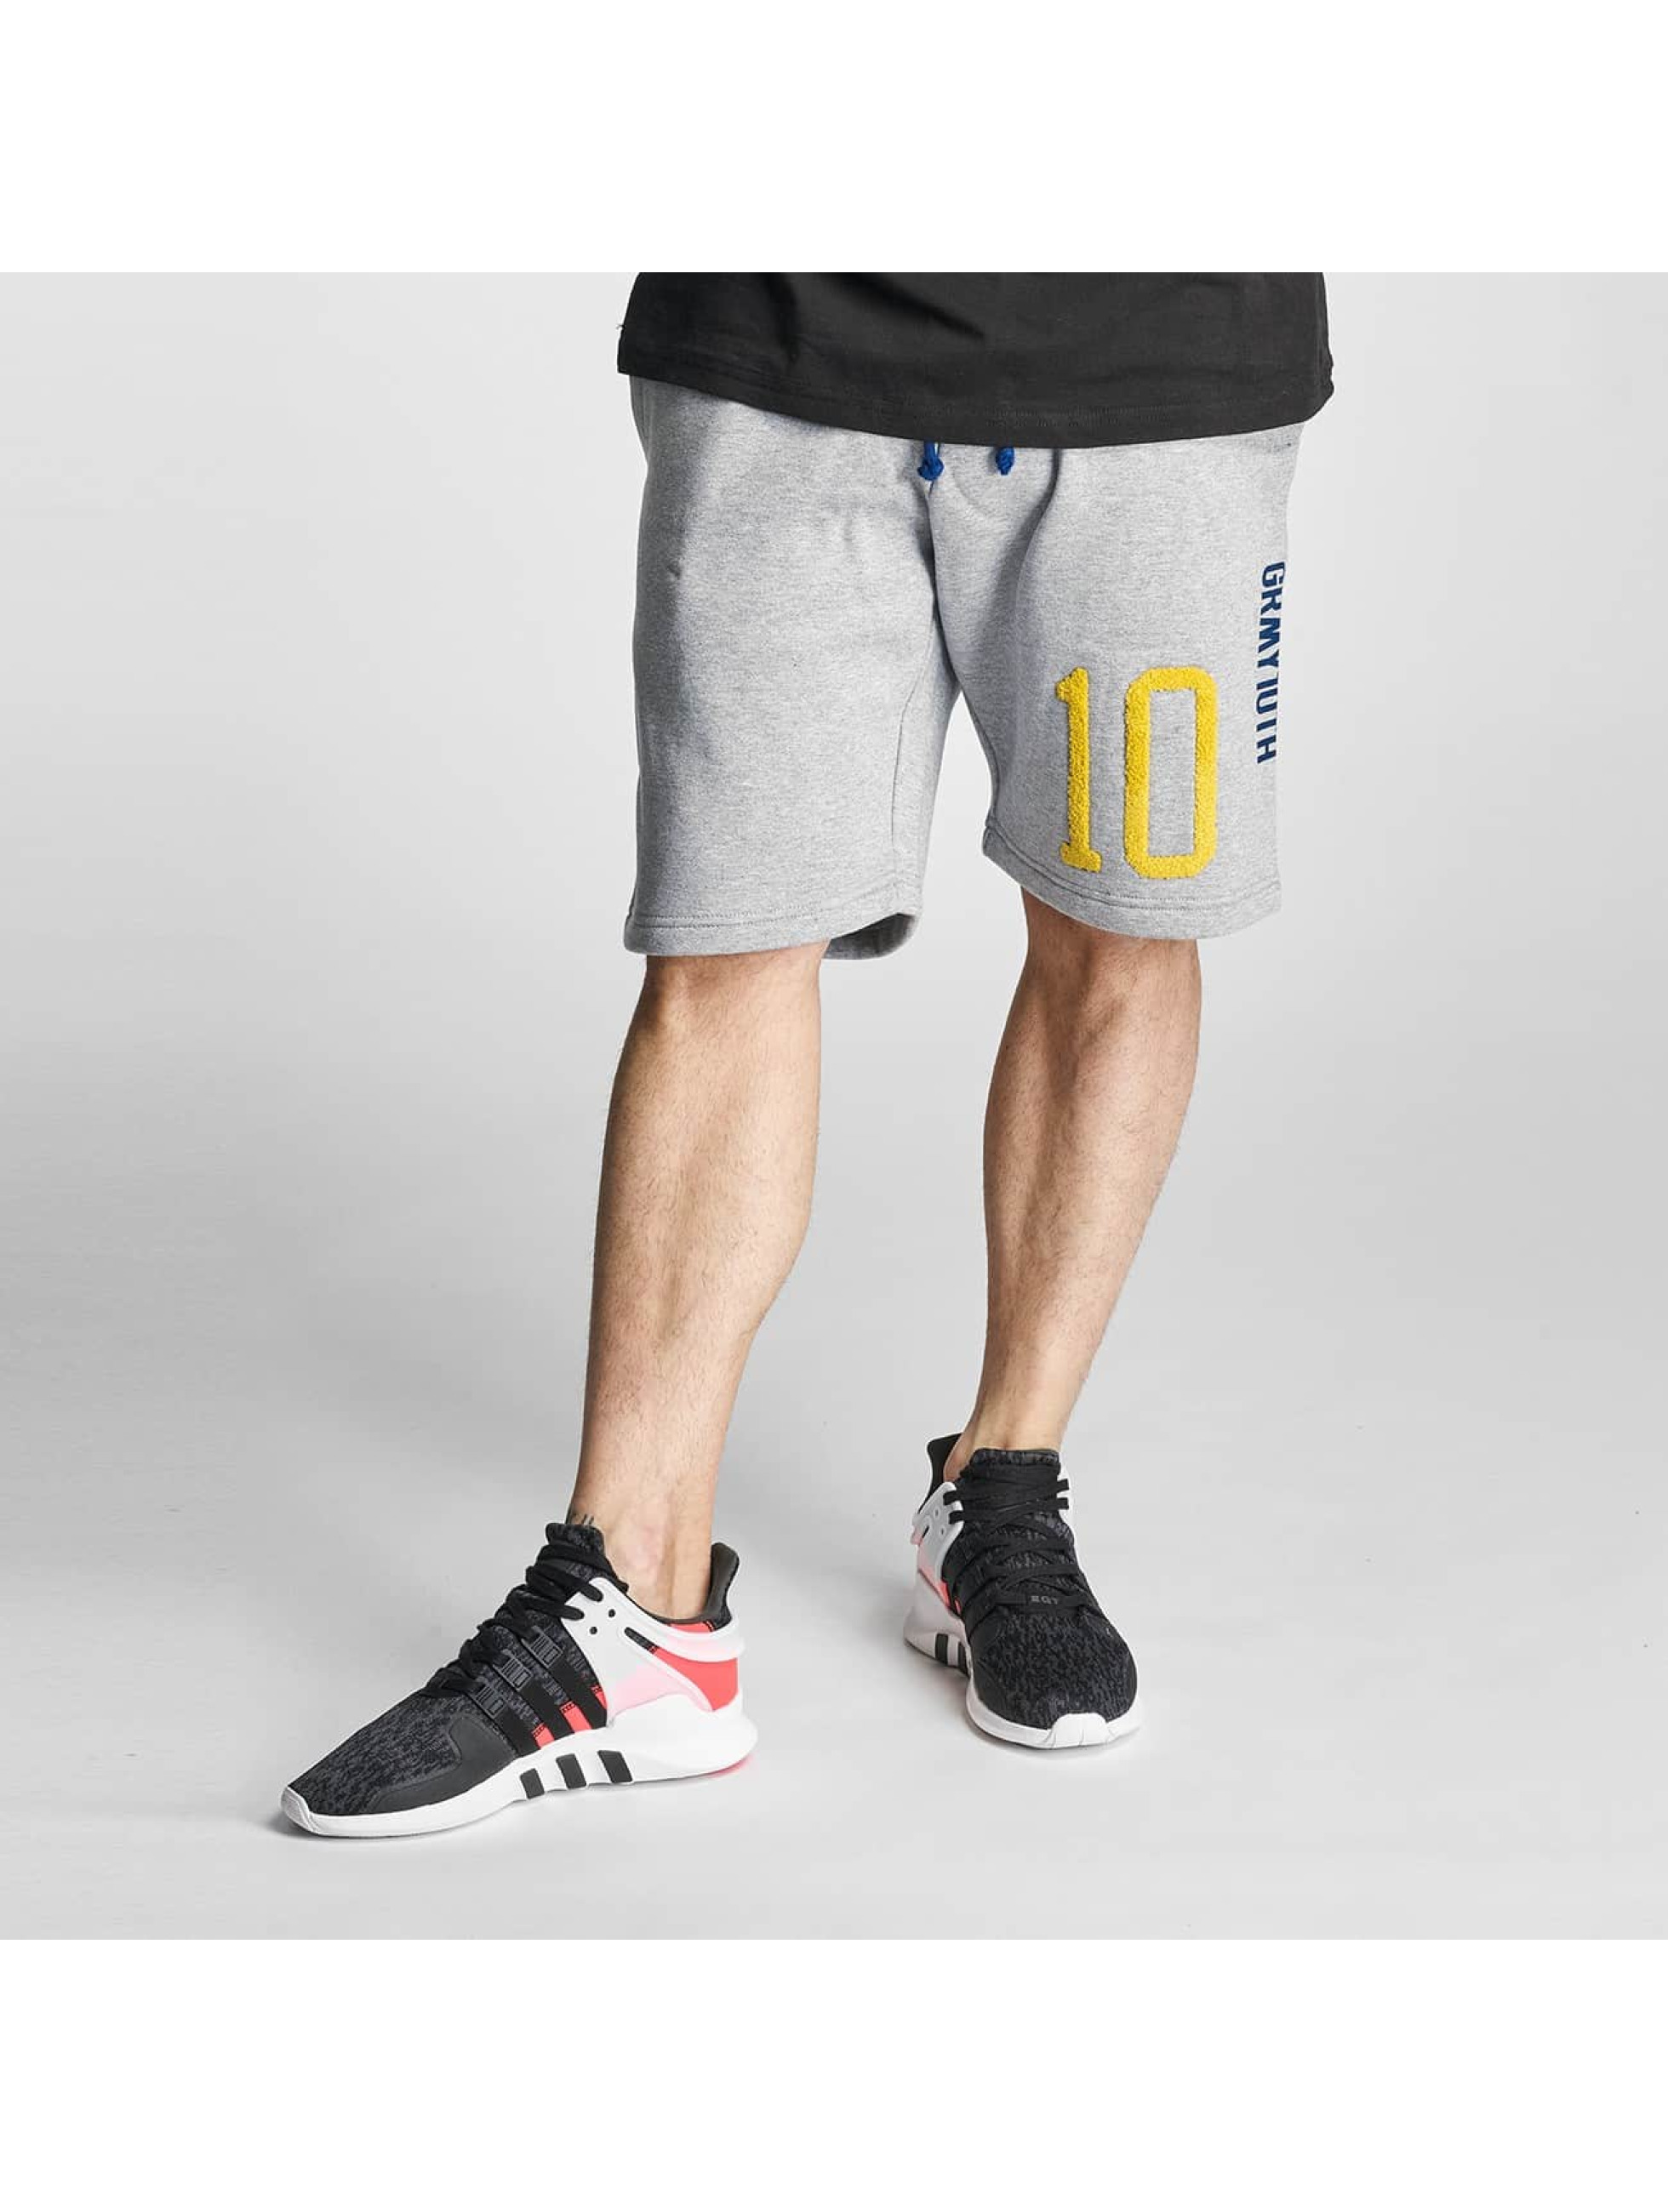 Grimey Wear Männer Shorts X Years in grau - broschei